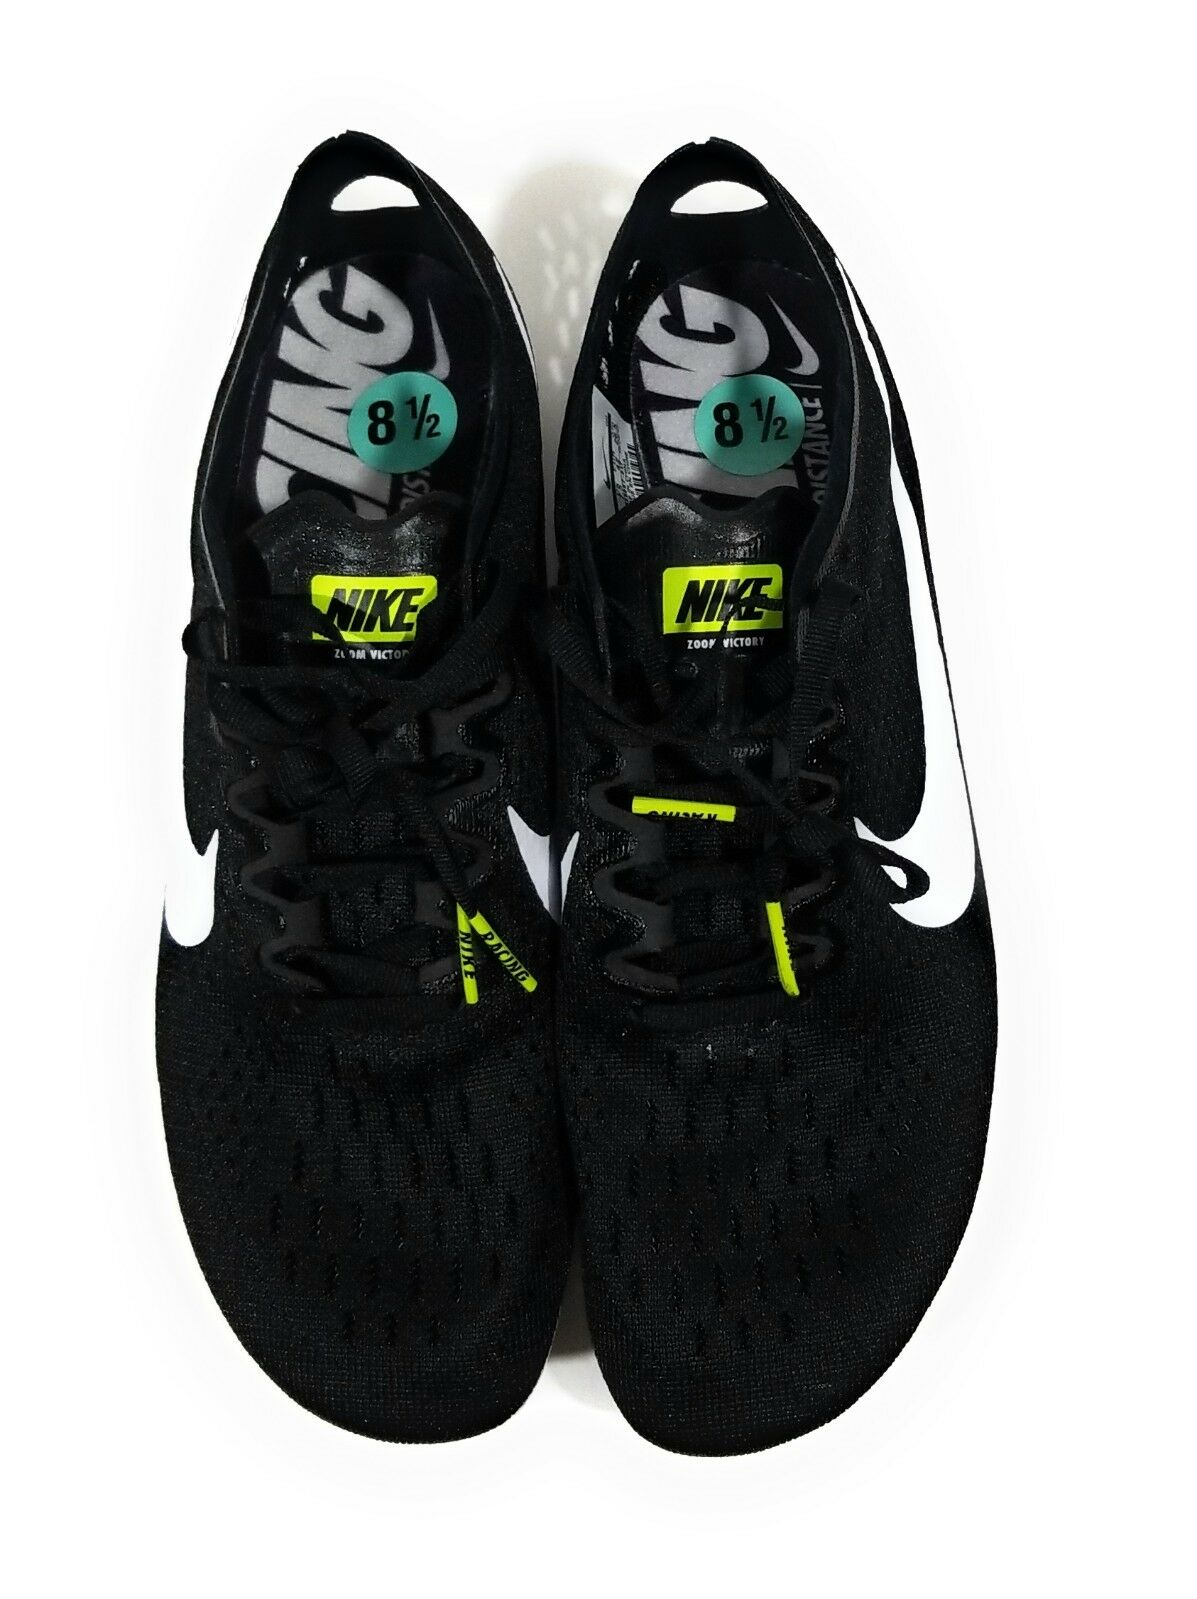 best website 29519 bf811 ... Nike Zoom Victory 3 Mens Track Spikes Black White White White Size 12  de6ee6 ...